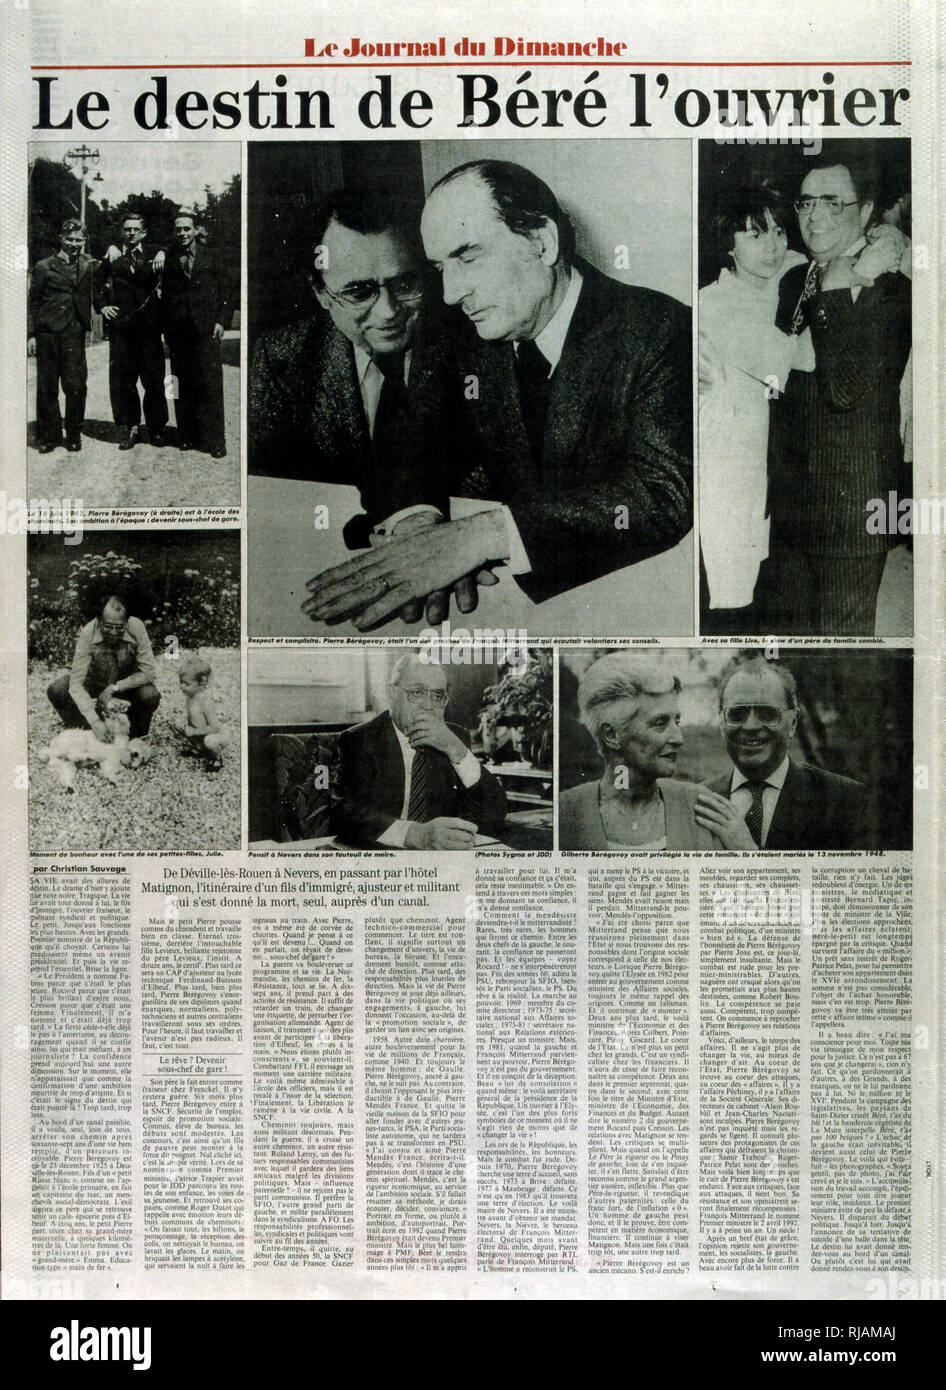 page of the French newspaper 'Le Journal du Dimanche' after the suicide of Pierre Beregovoy, May 1993. Pierre Eugene Beregovoy (1925 - 1 May 1993) was a French politician who served as Prime Minister of France under President Francois Mitterrand from 2 April 1992 to 29 March 1993. - Stock Image